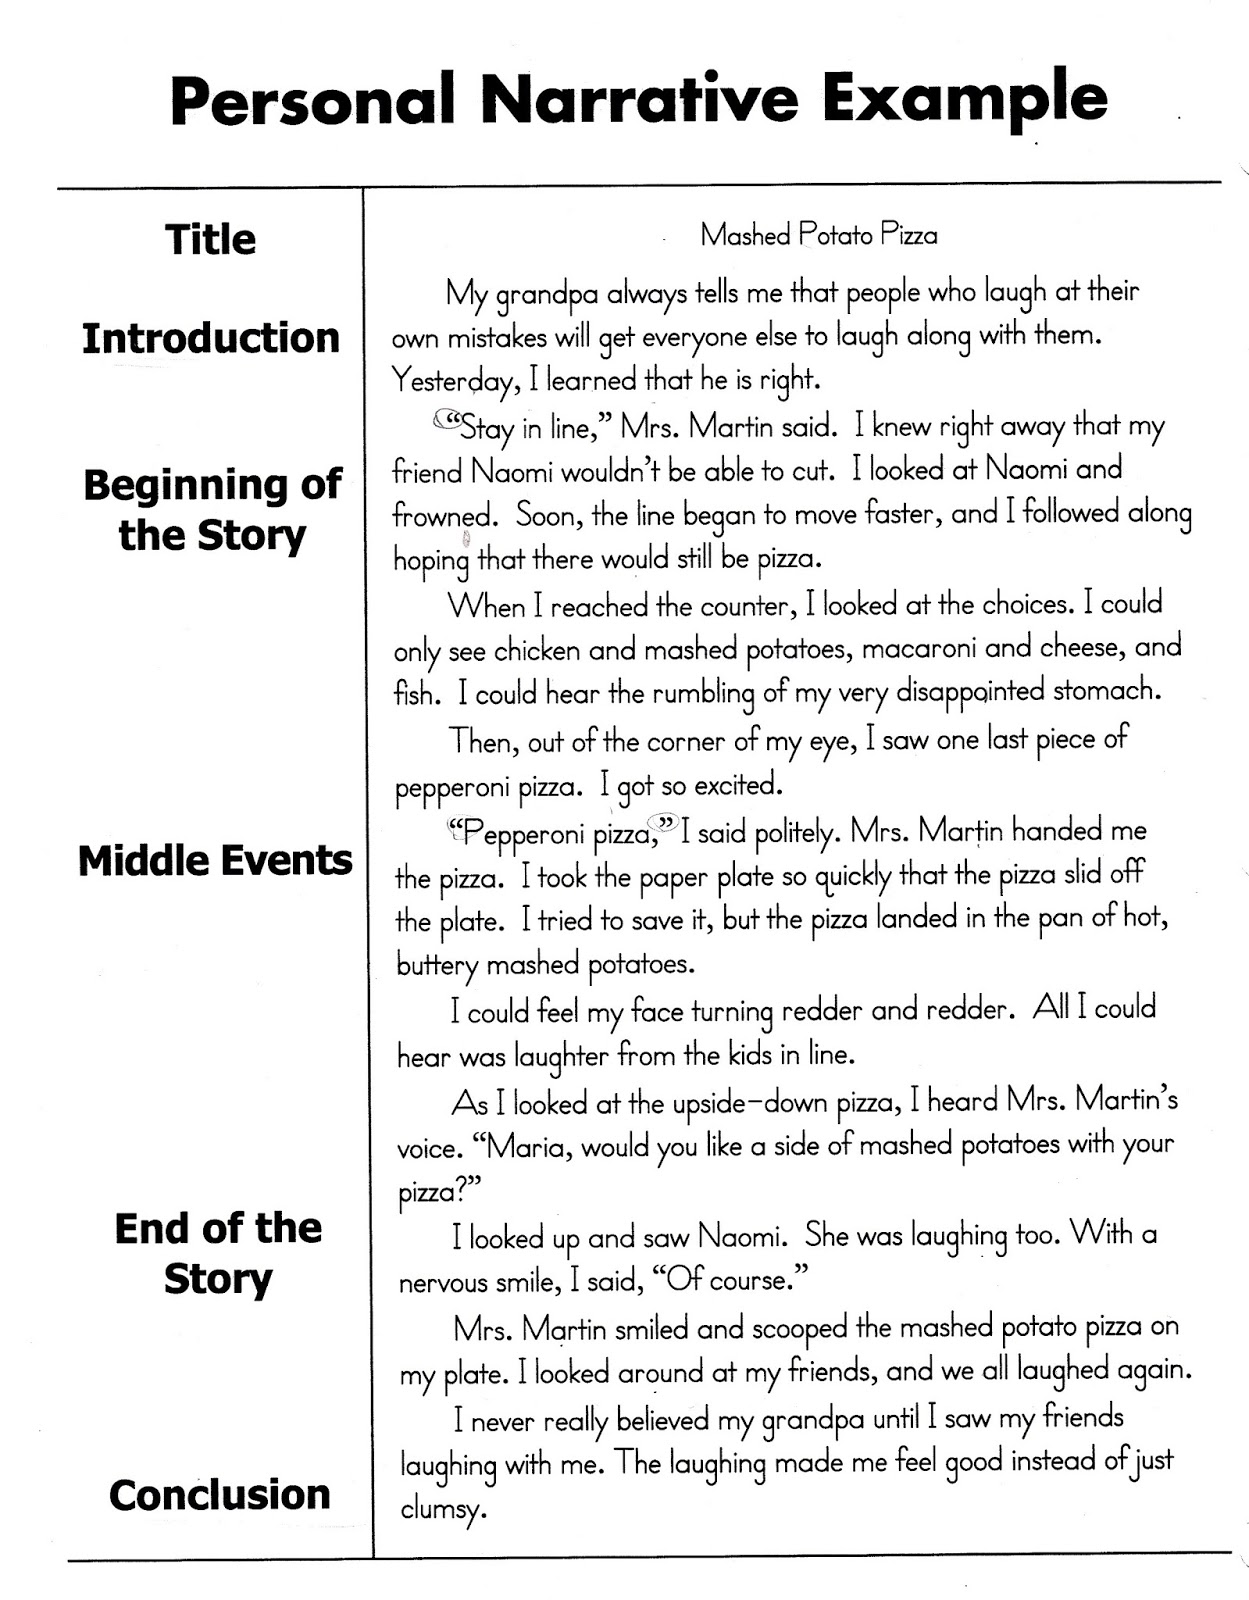 018 Personal20narrative Essay Example Short Fantastic Narrative Pdf About Life Topics Full